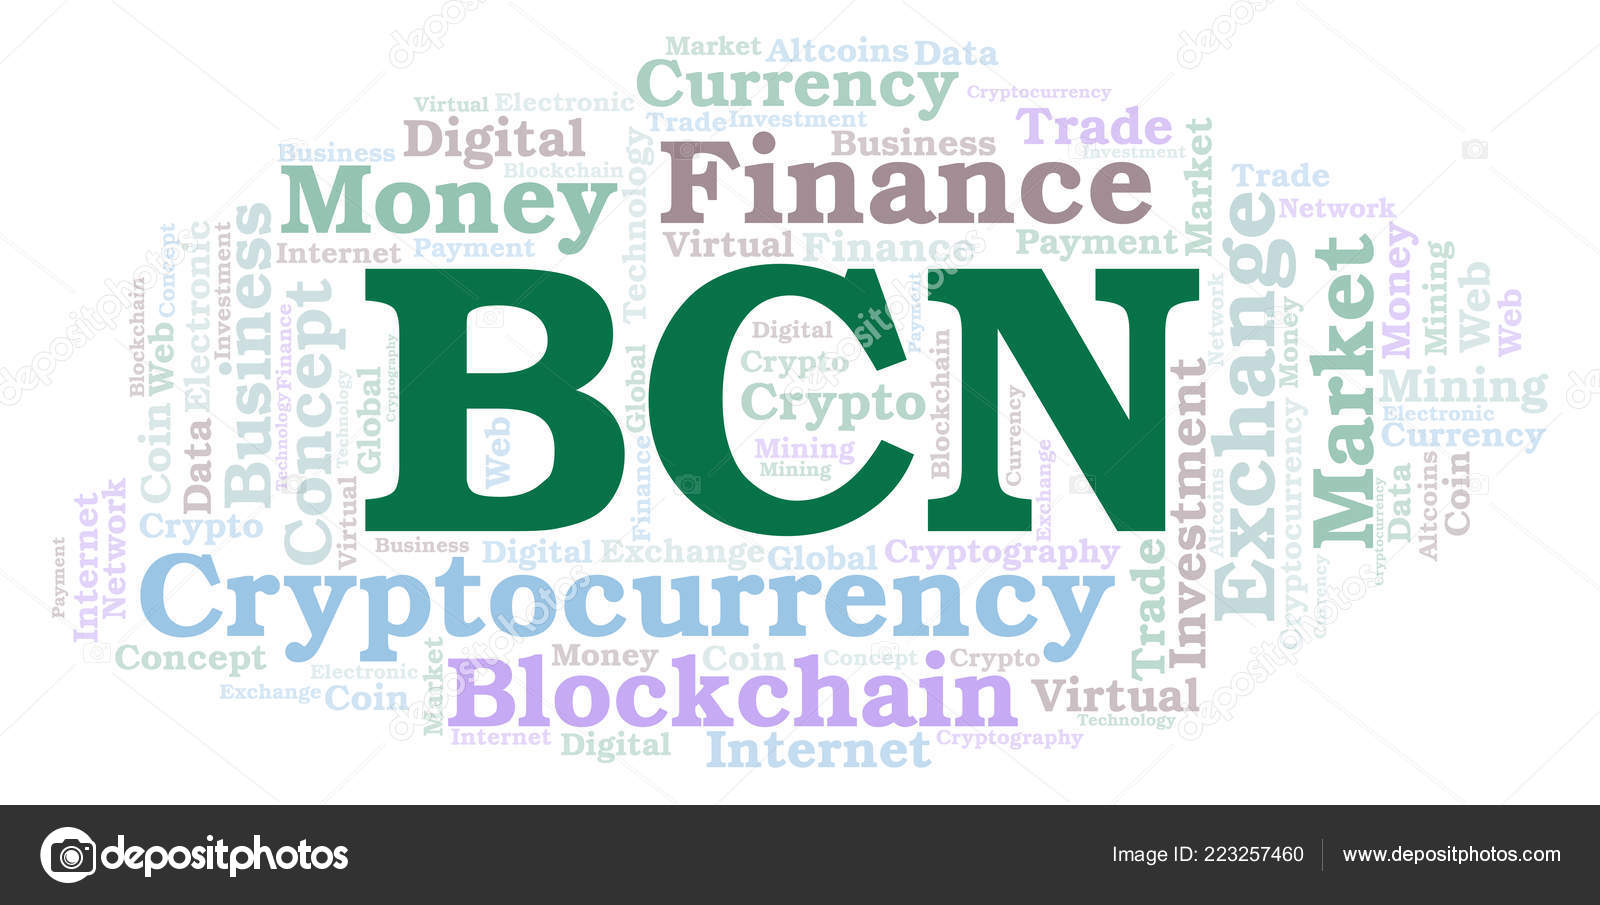 what is bcn cryptocurrency